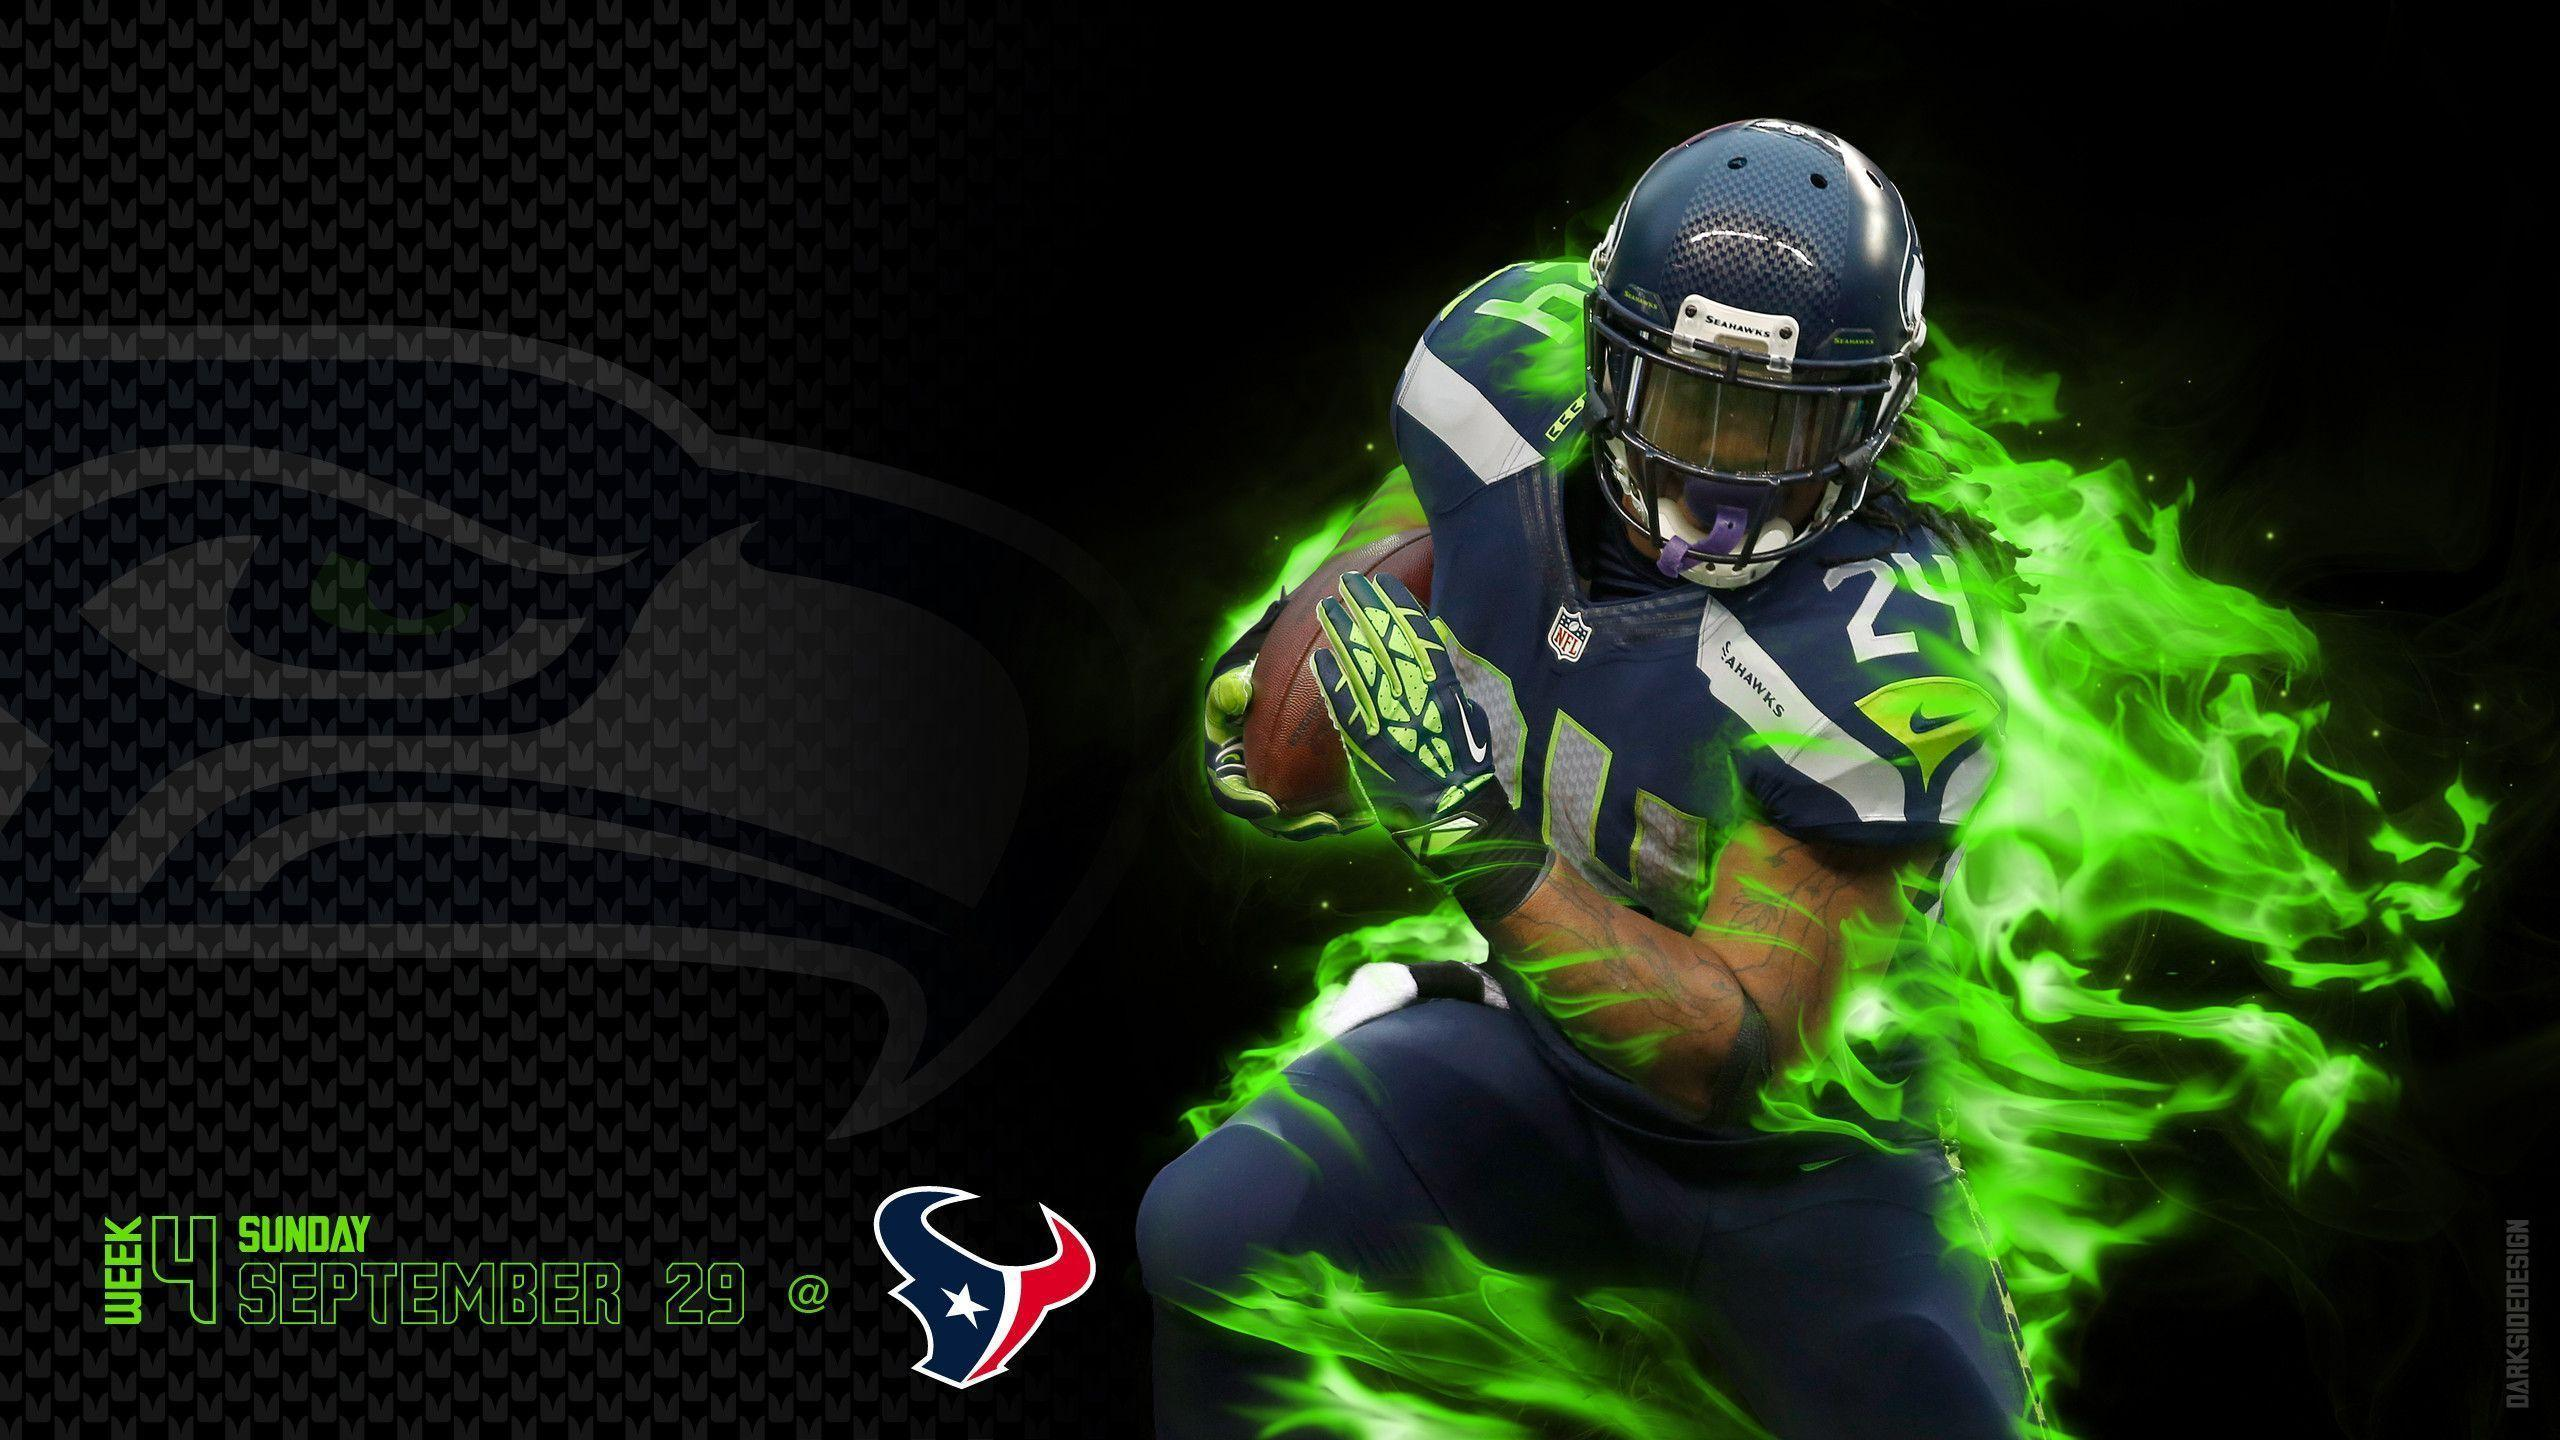 nfl american football wallpapers - photo #22